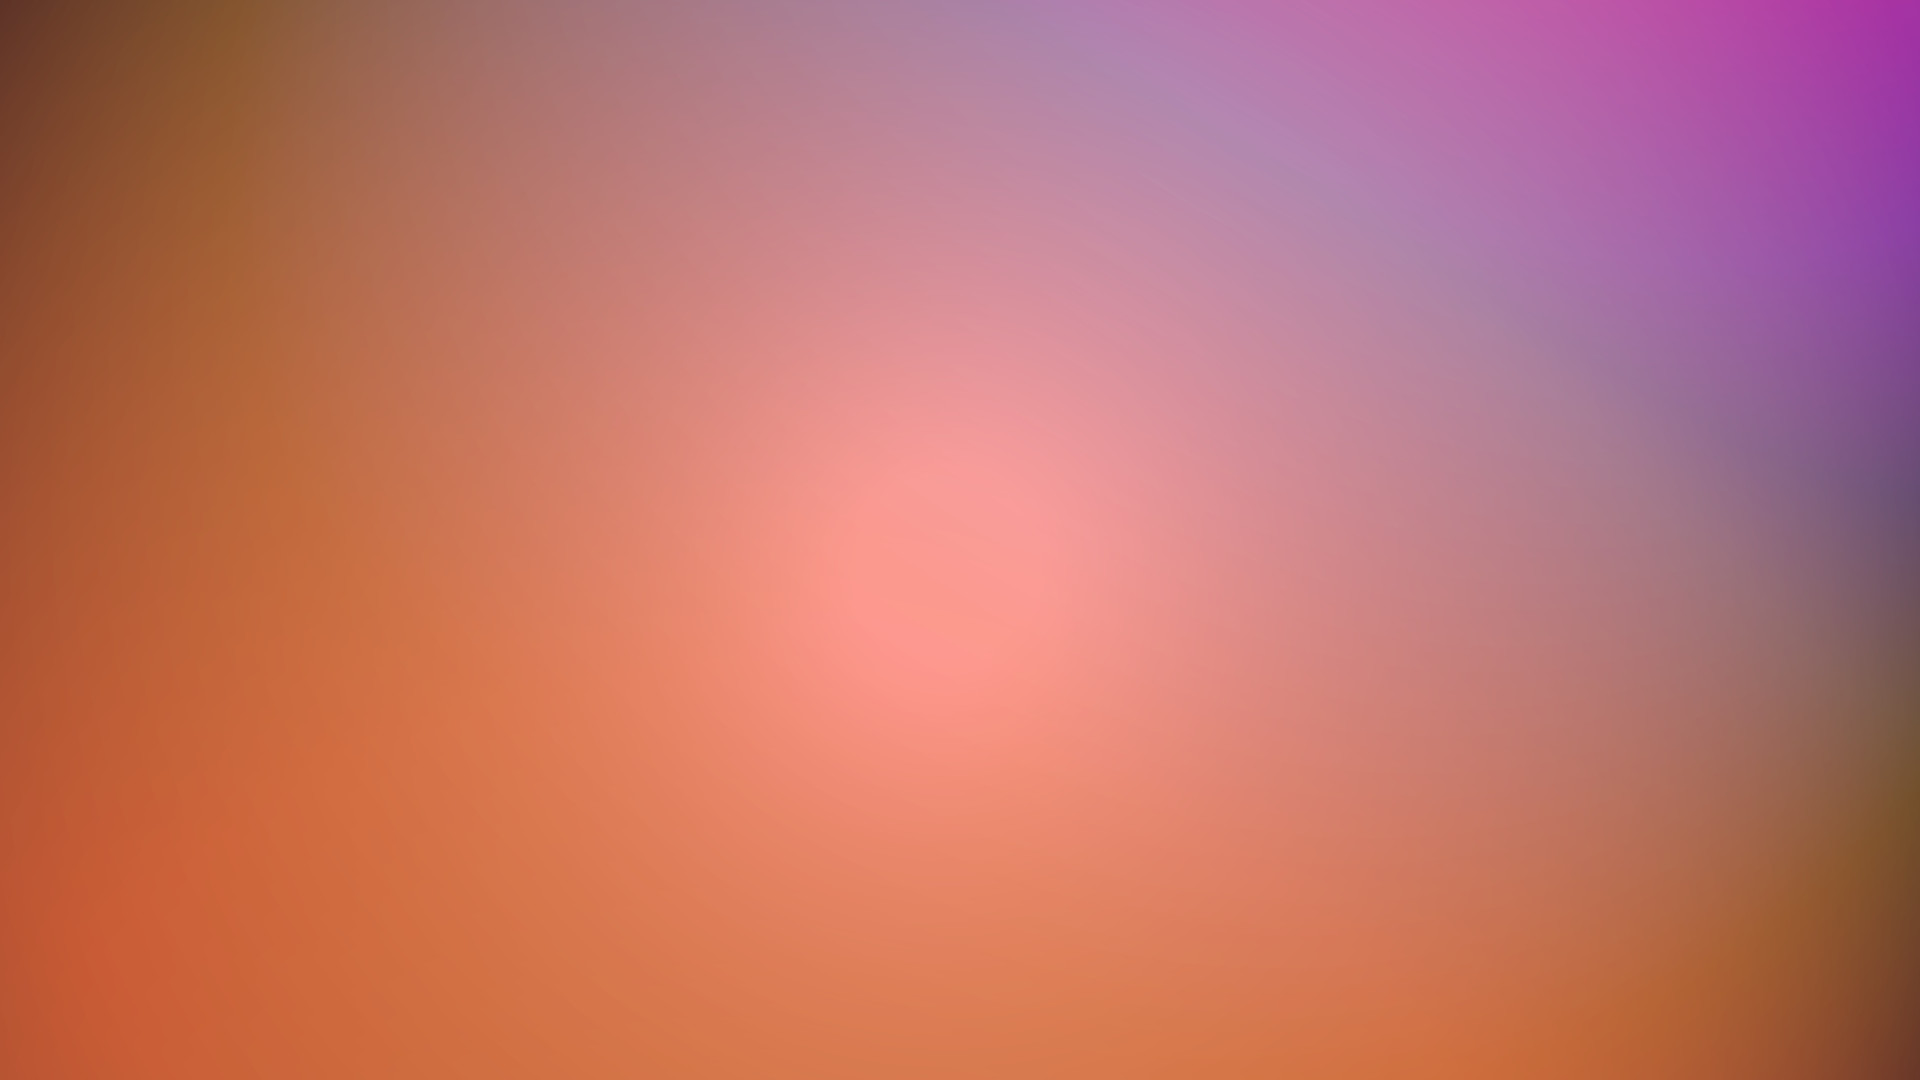 1920x1080 Peach Gradient - HD Wallpapers Image | HD Wallpapers Image